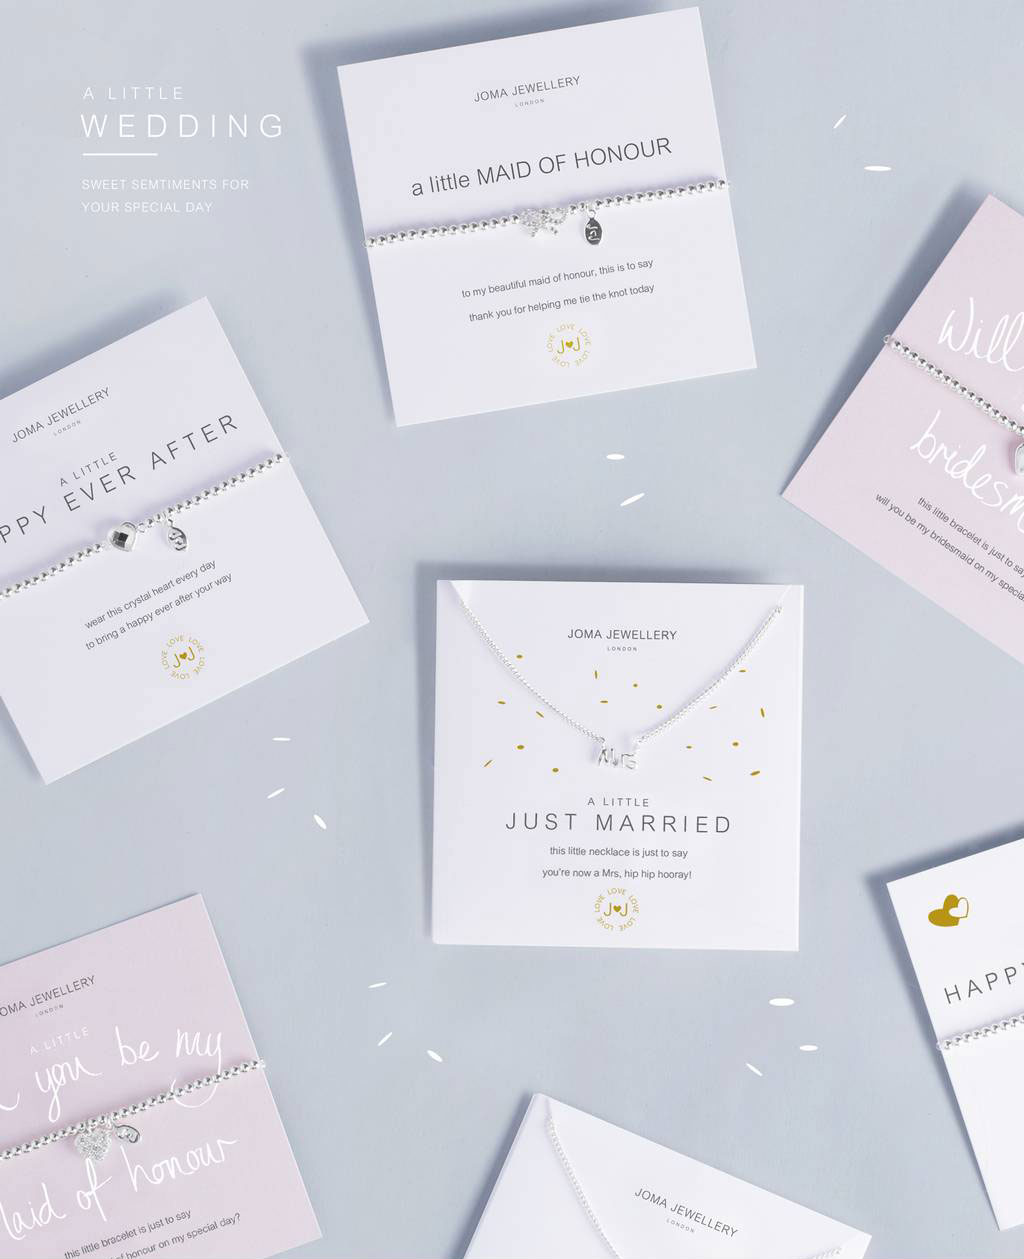 Joma Jewellery A little Wedding Collection